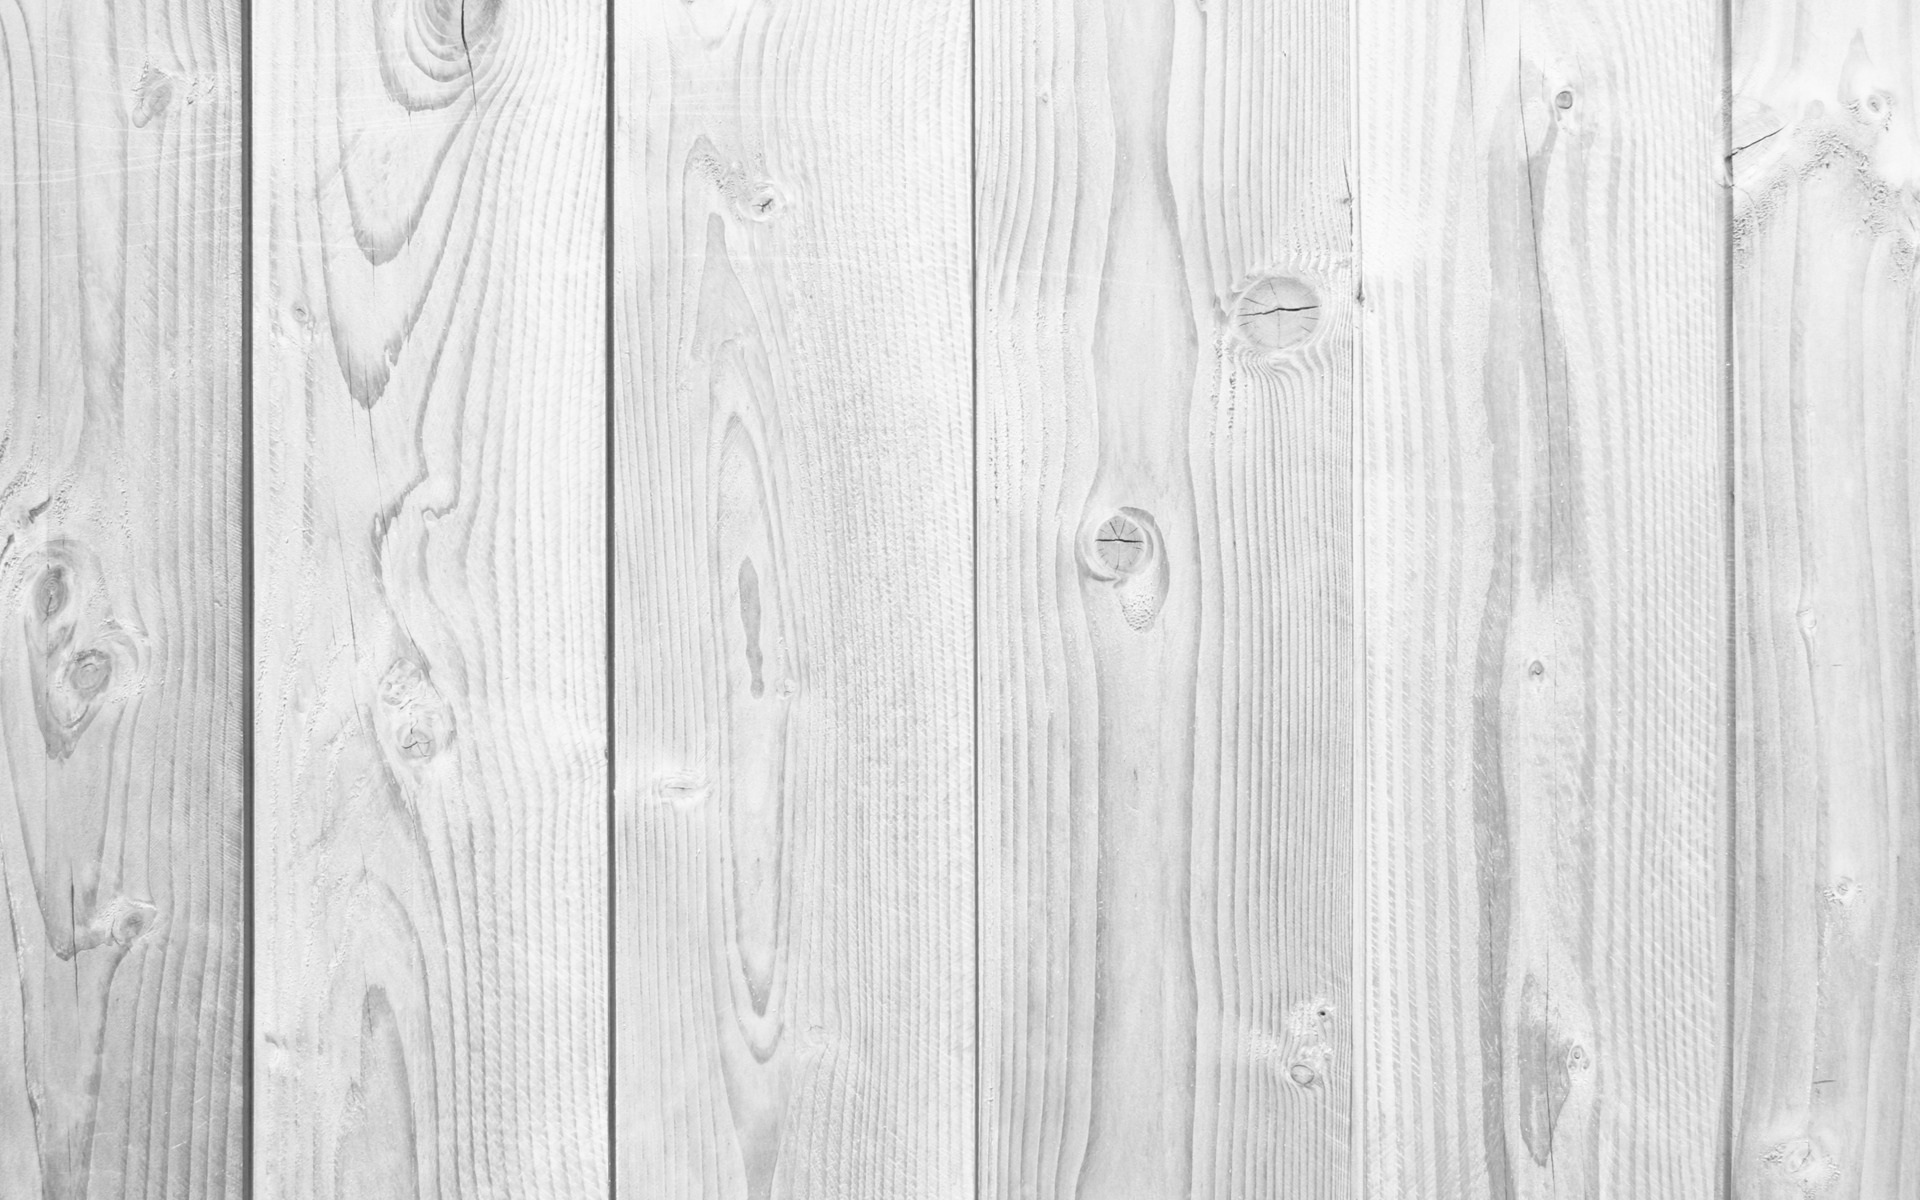 White Painted Wood HD Abstract 4k Wallpapers Images Backgrounds